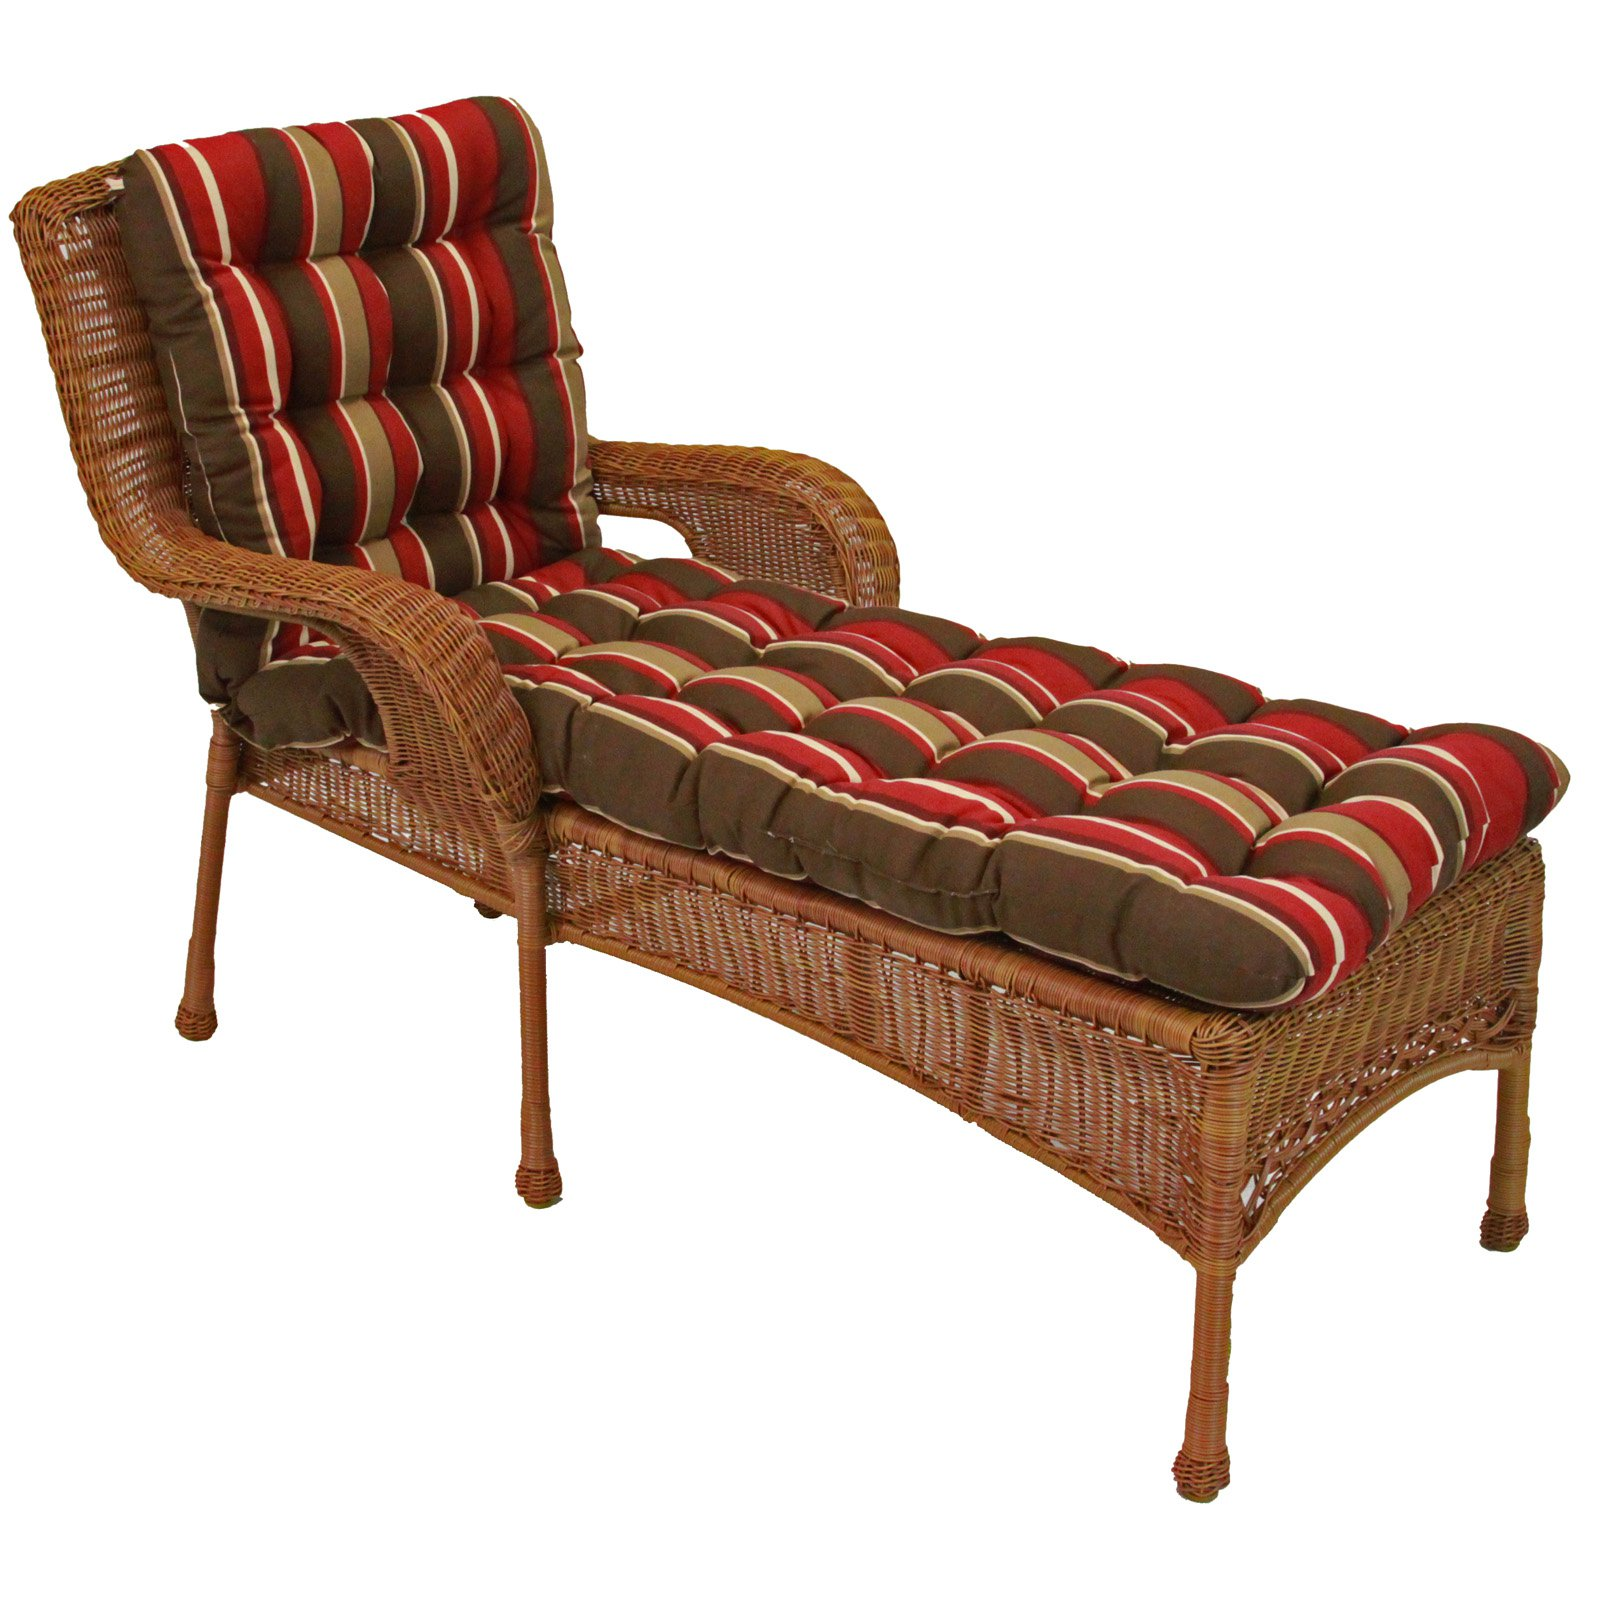 old classic sunbrella chaise lounge cushions